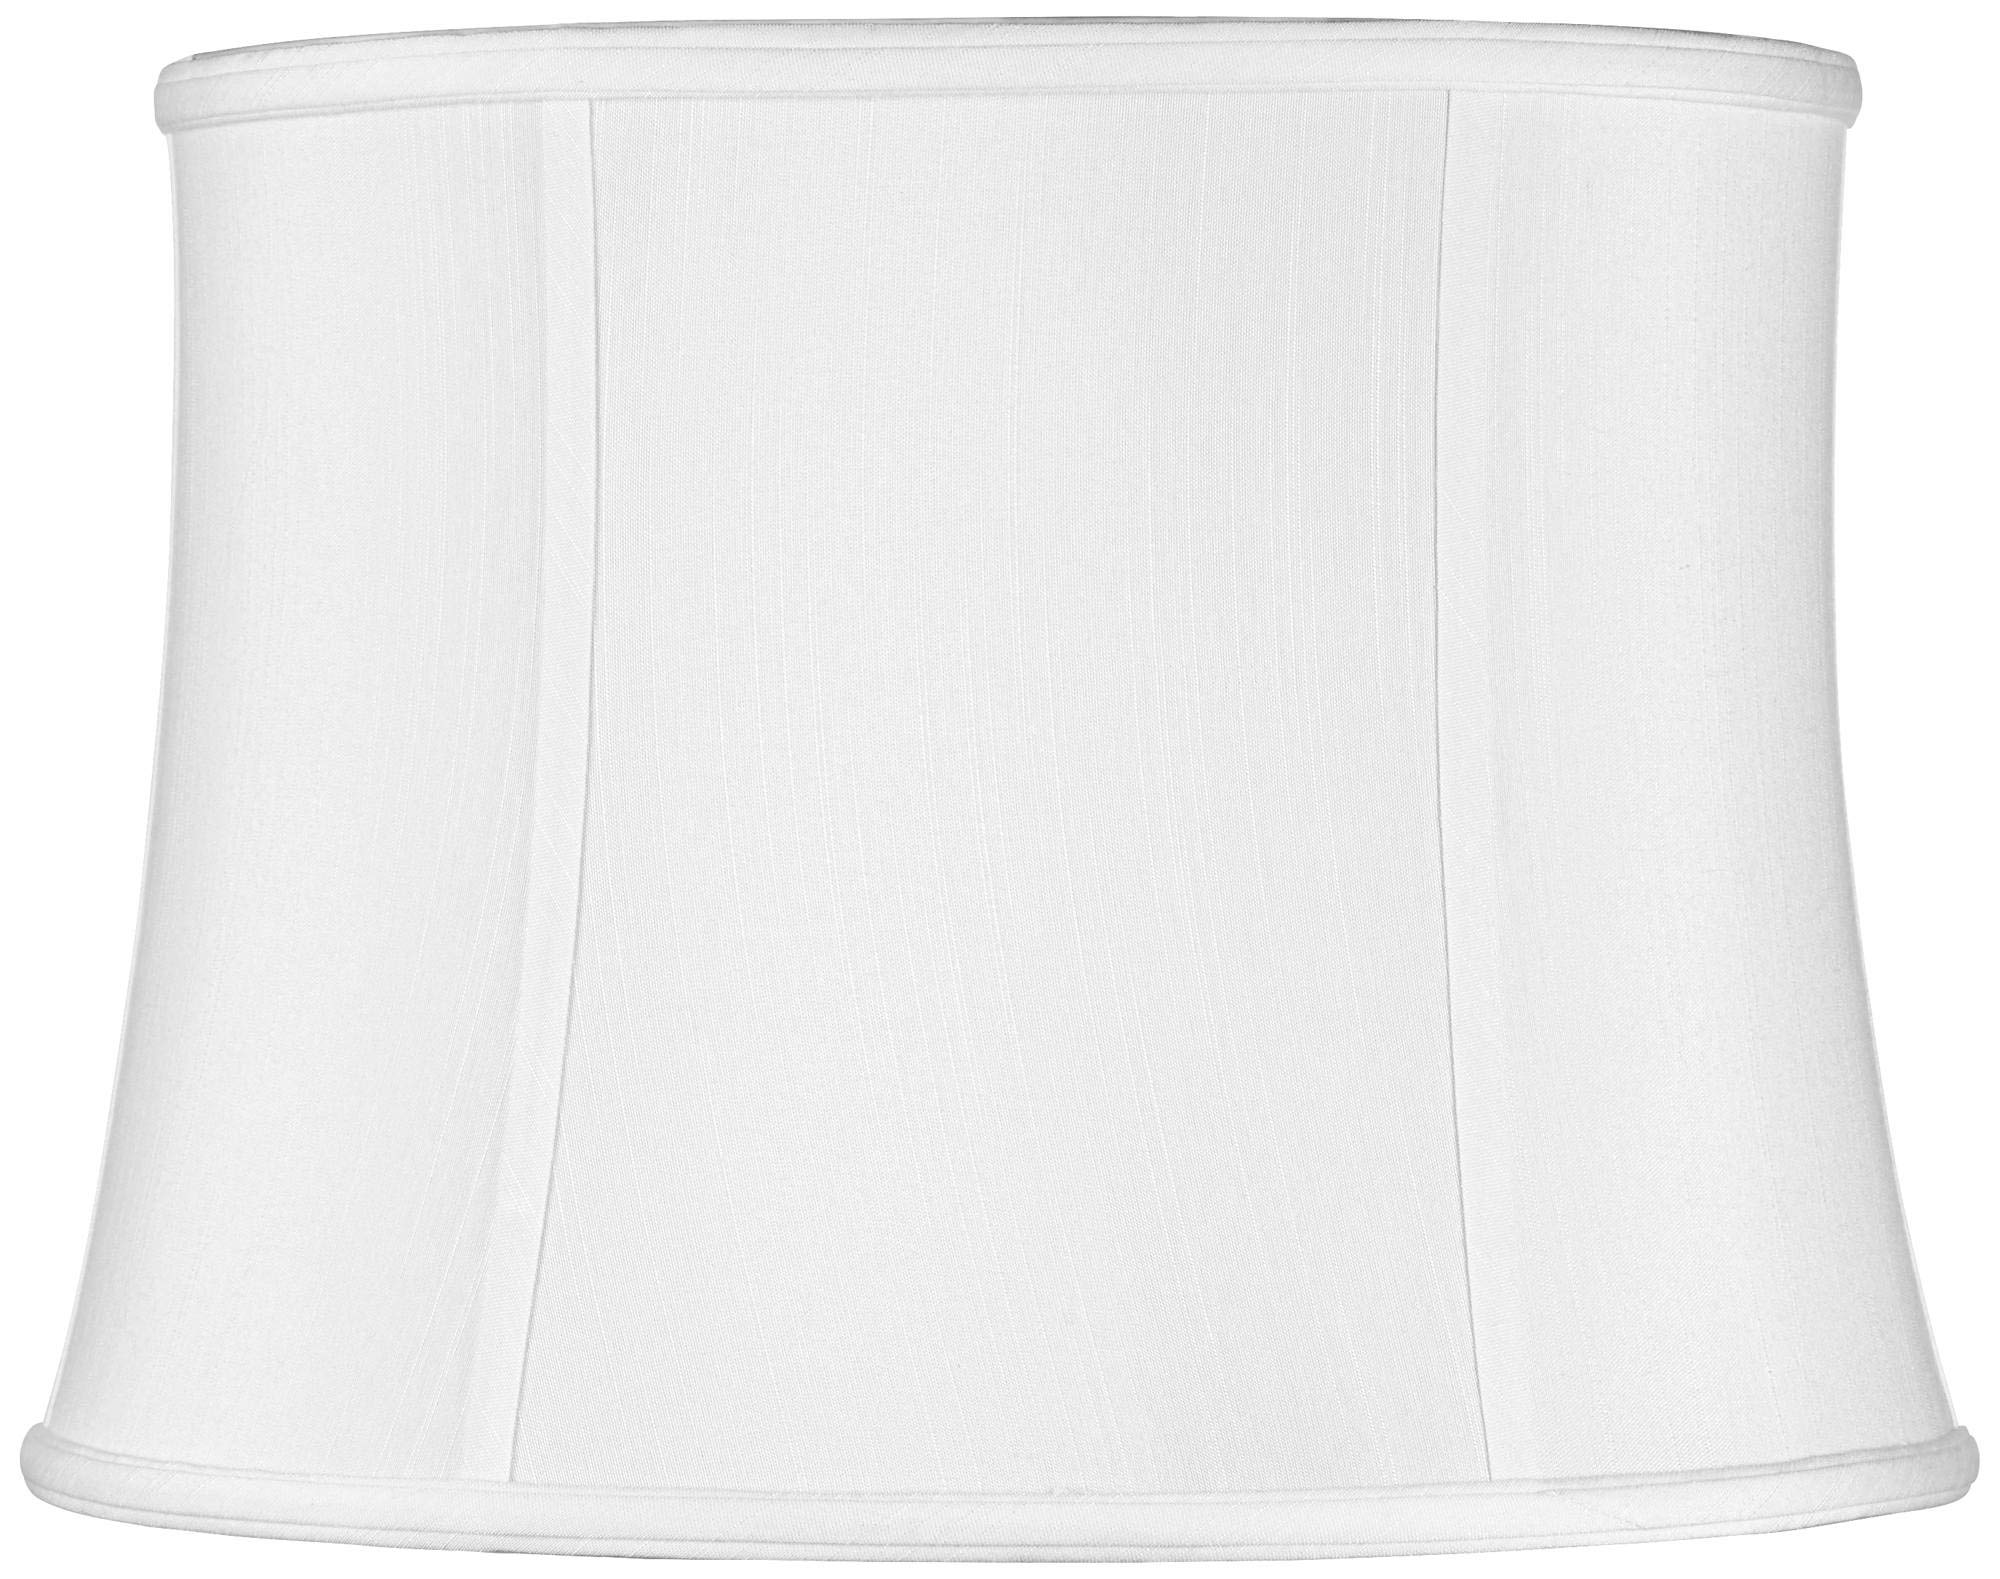 Imperial Collection White Drum Lamp Shade 14x16x12 (Spider) - Imperial Shade